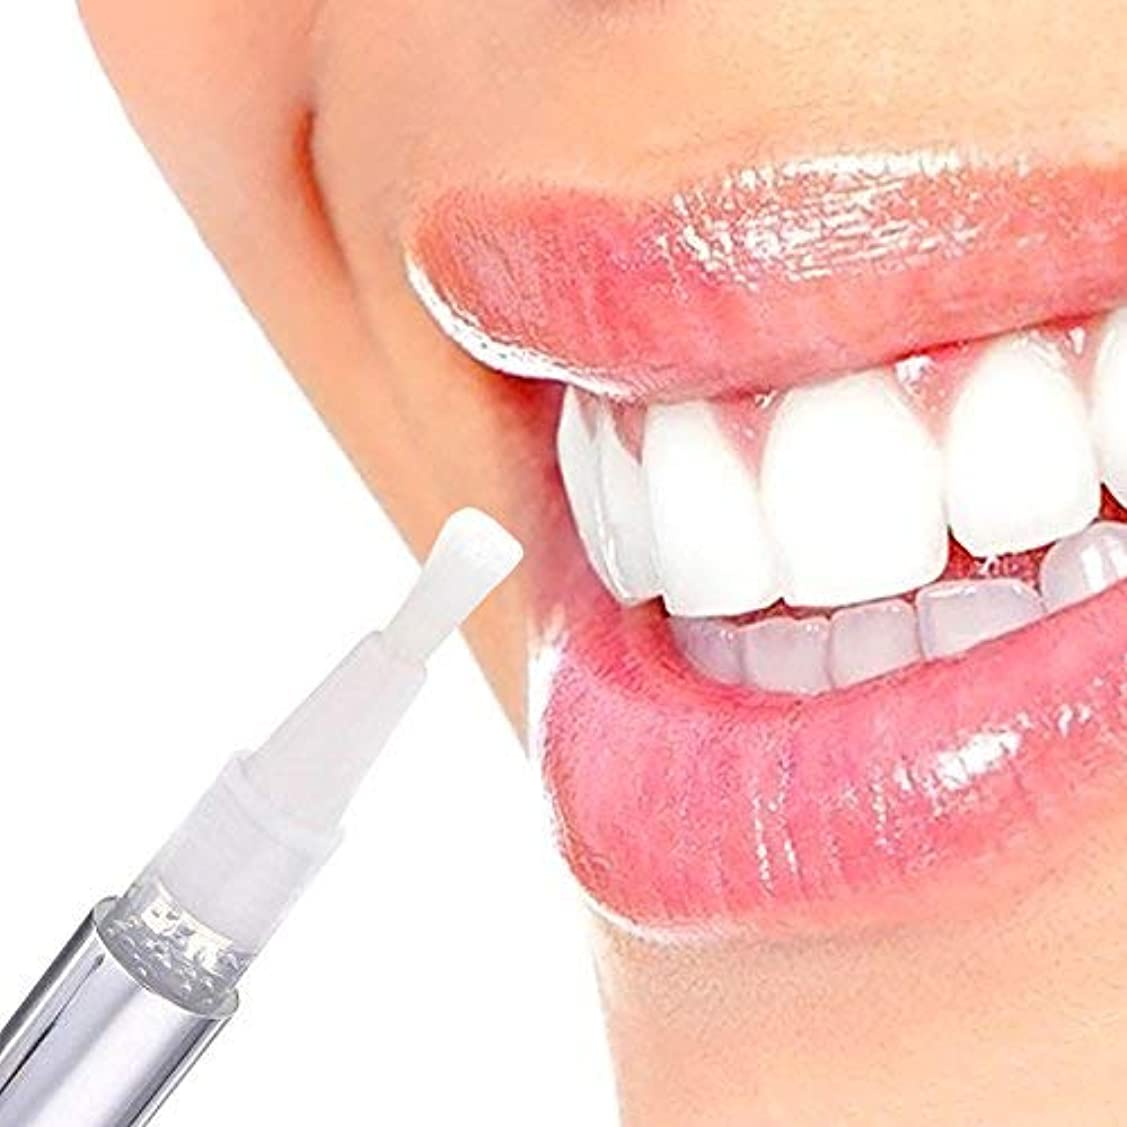 トリップ予測ヤギNat 1PCS Hot Creative Effective Teeth Whitening Pen Tooth Gel Whitener Bleach Stain Eraser Sexy Celebrity Smile...